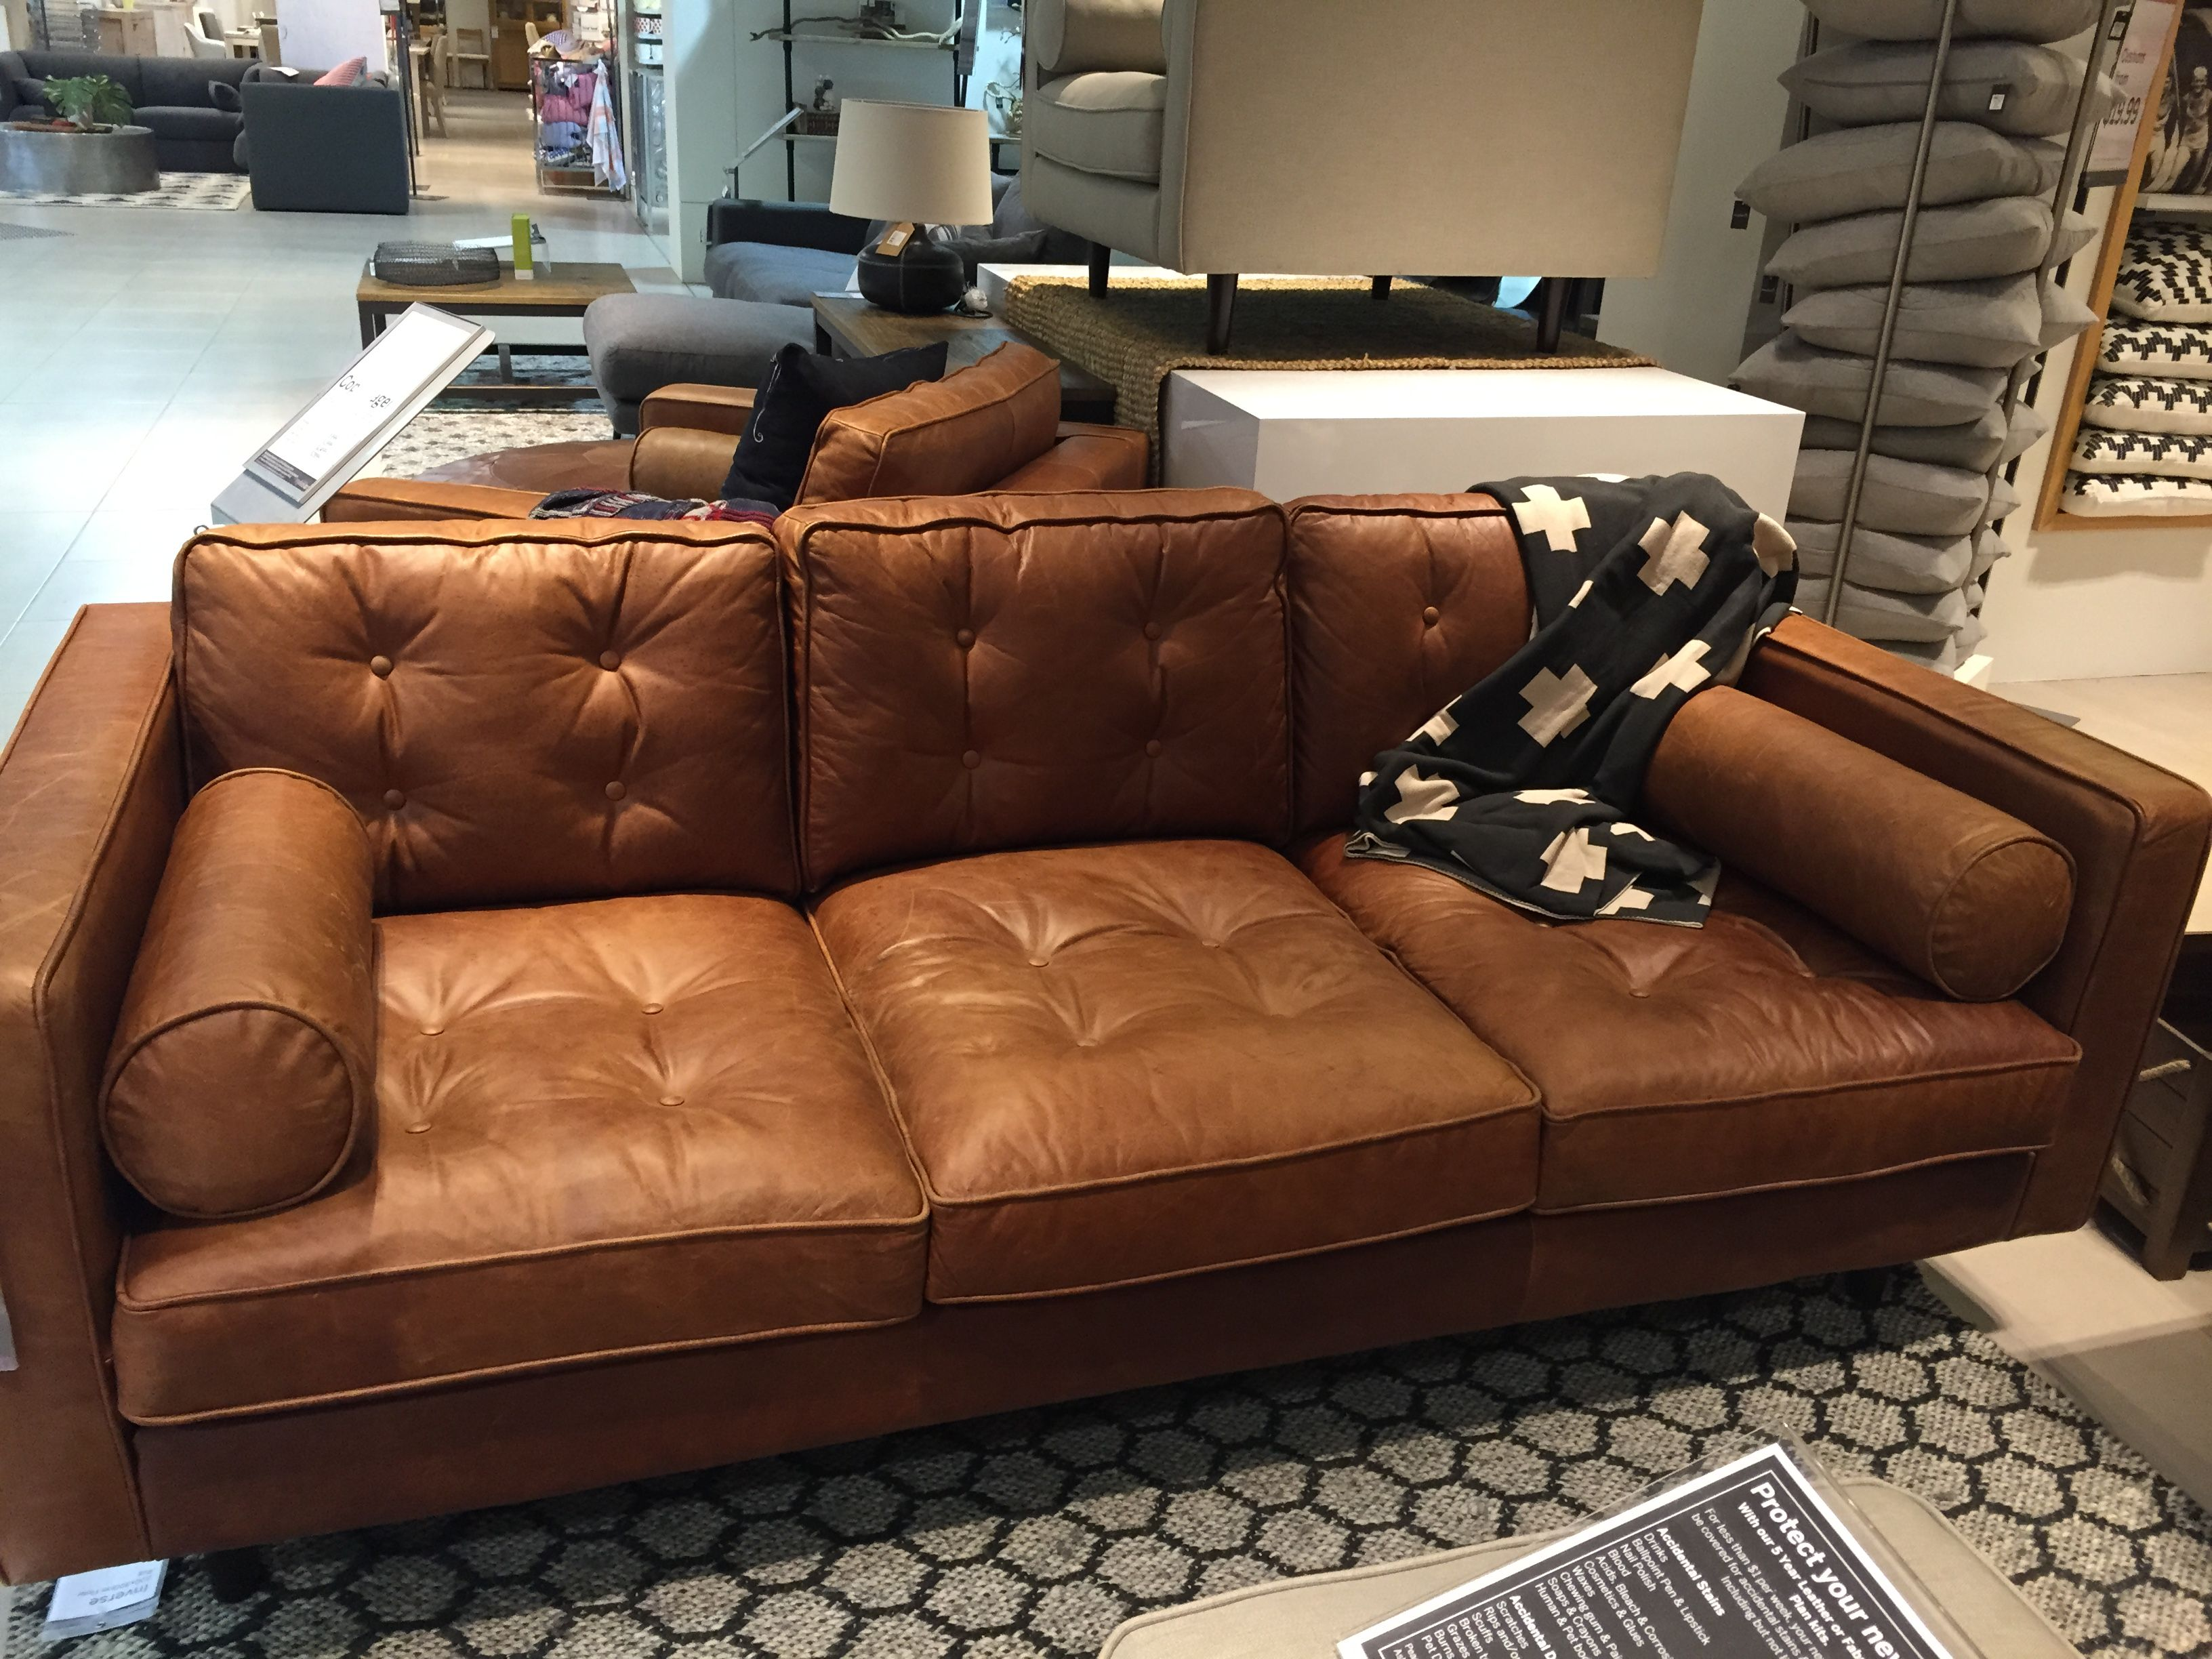 Freedom Furniture Couches Copenhagen 2 5 Tan Leather Sofa From Freedom Home Tan